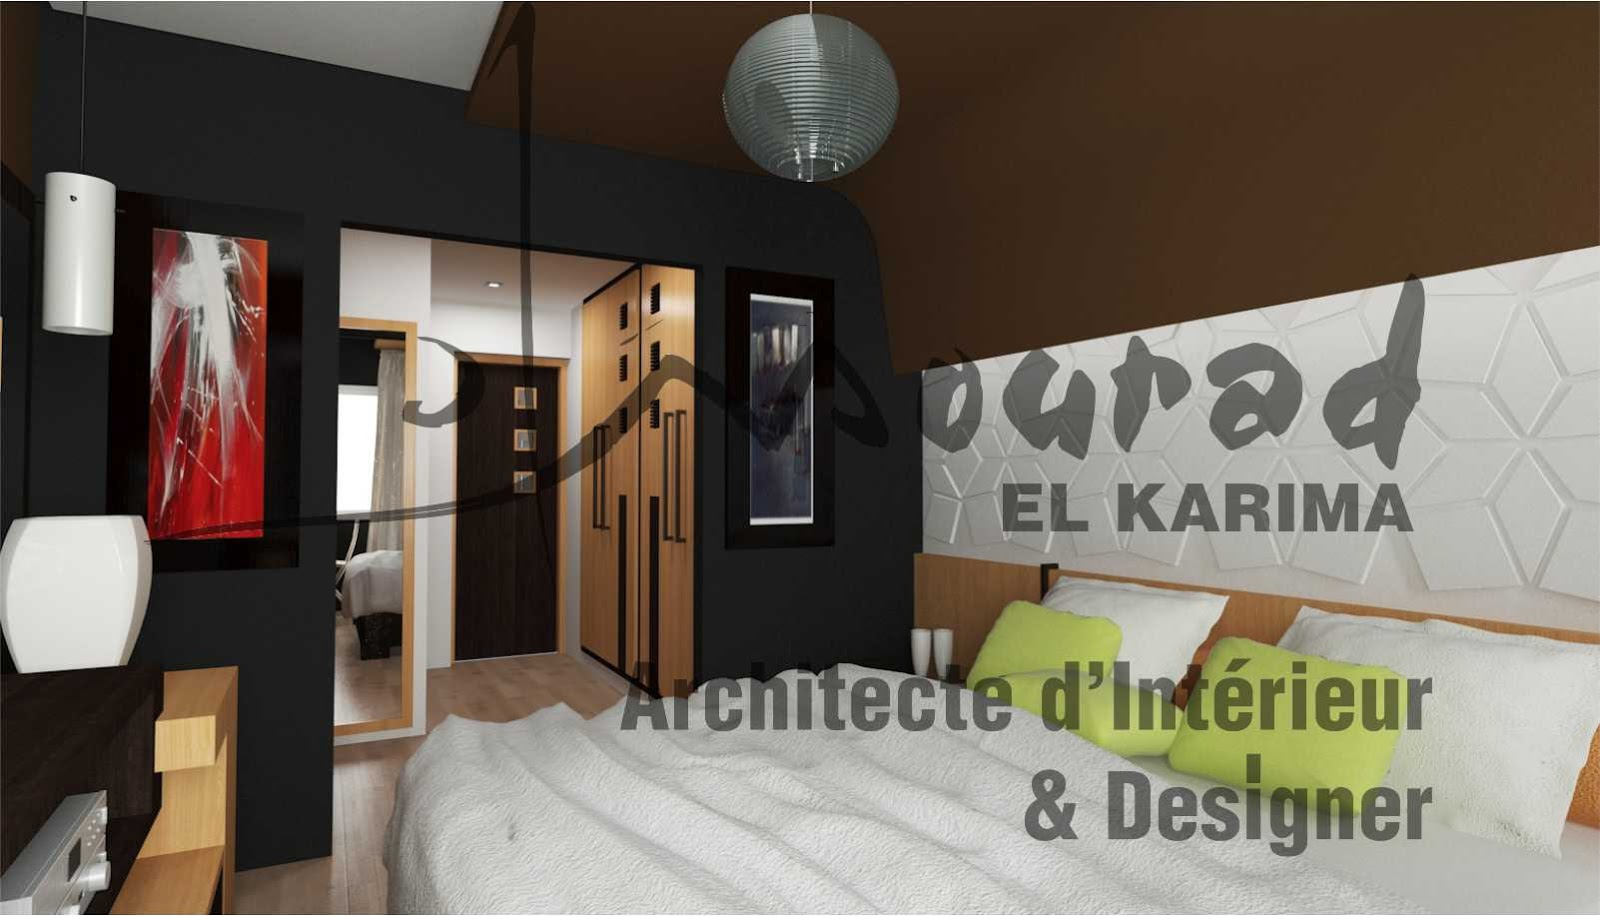 appartement s1 fonction et esth tique casablanca mourad el karima architecte d 39 interieur. Black Bedroom Furniture Sets. Home Design Ideas